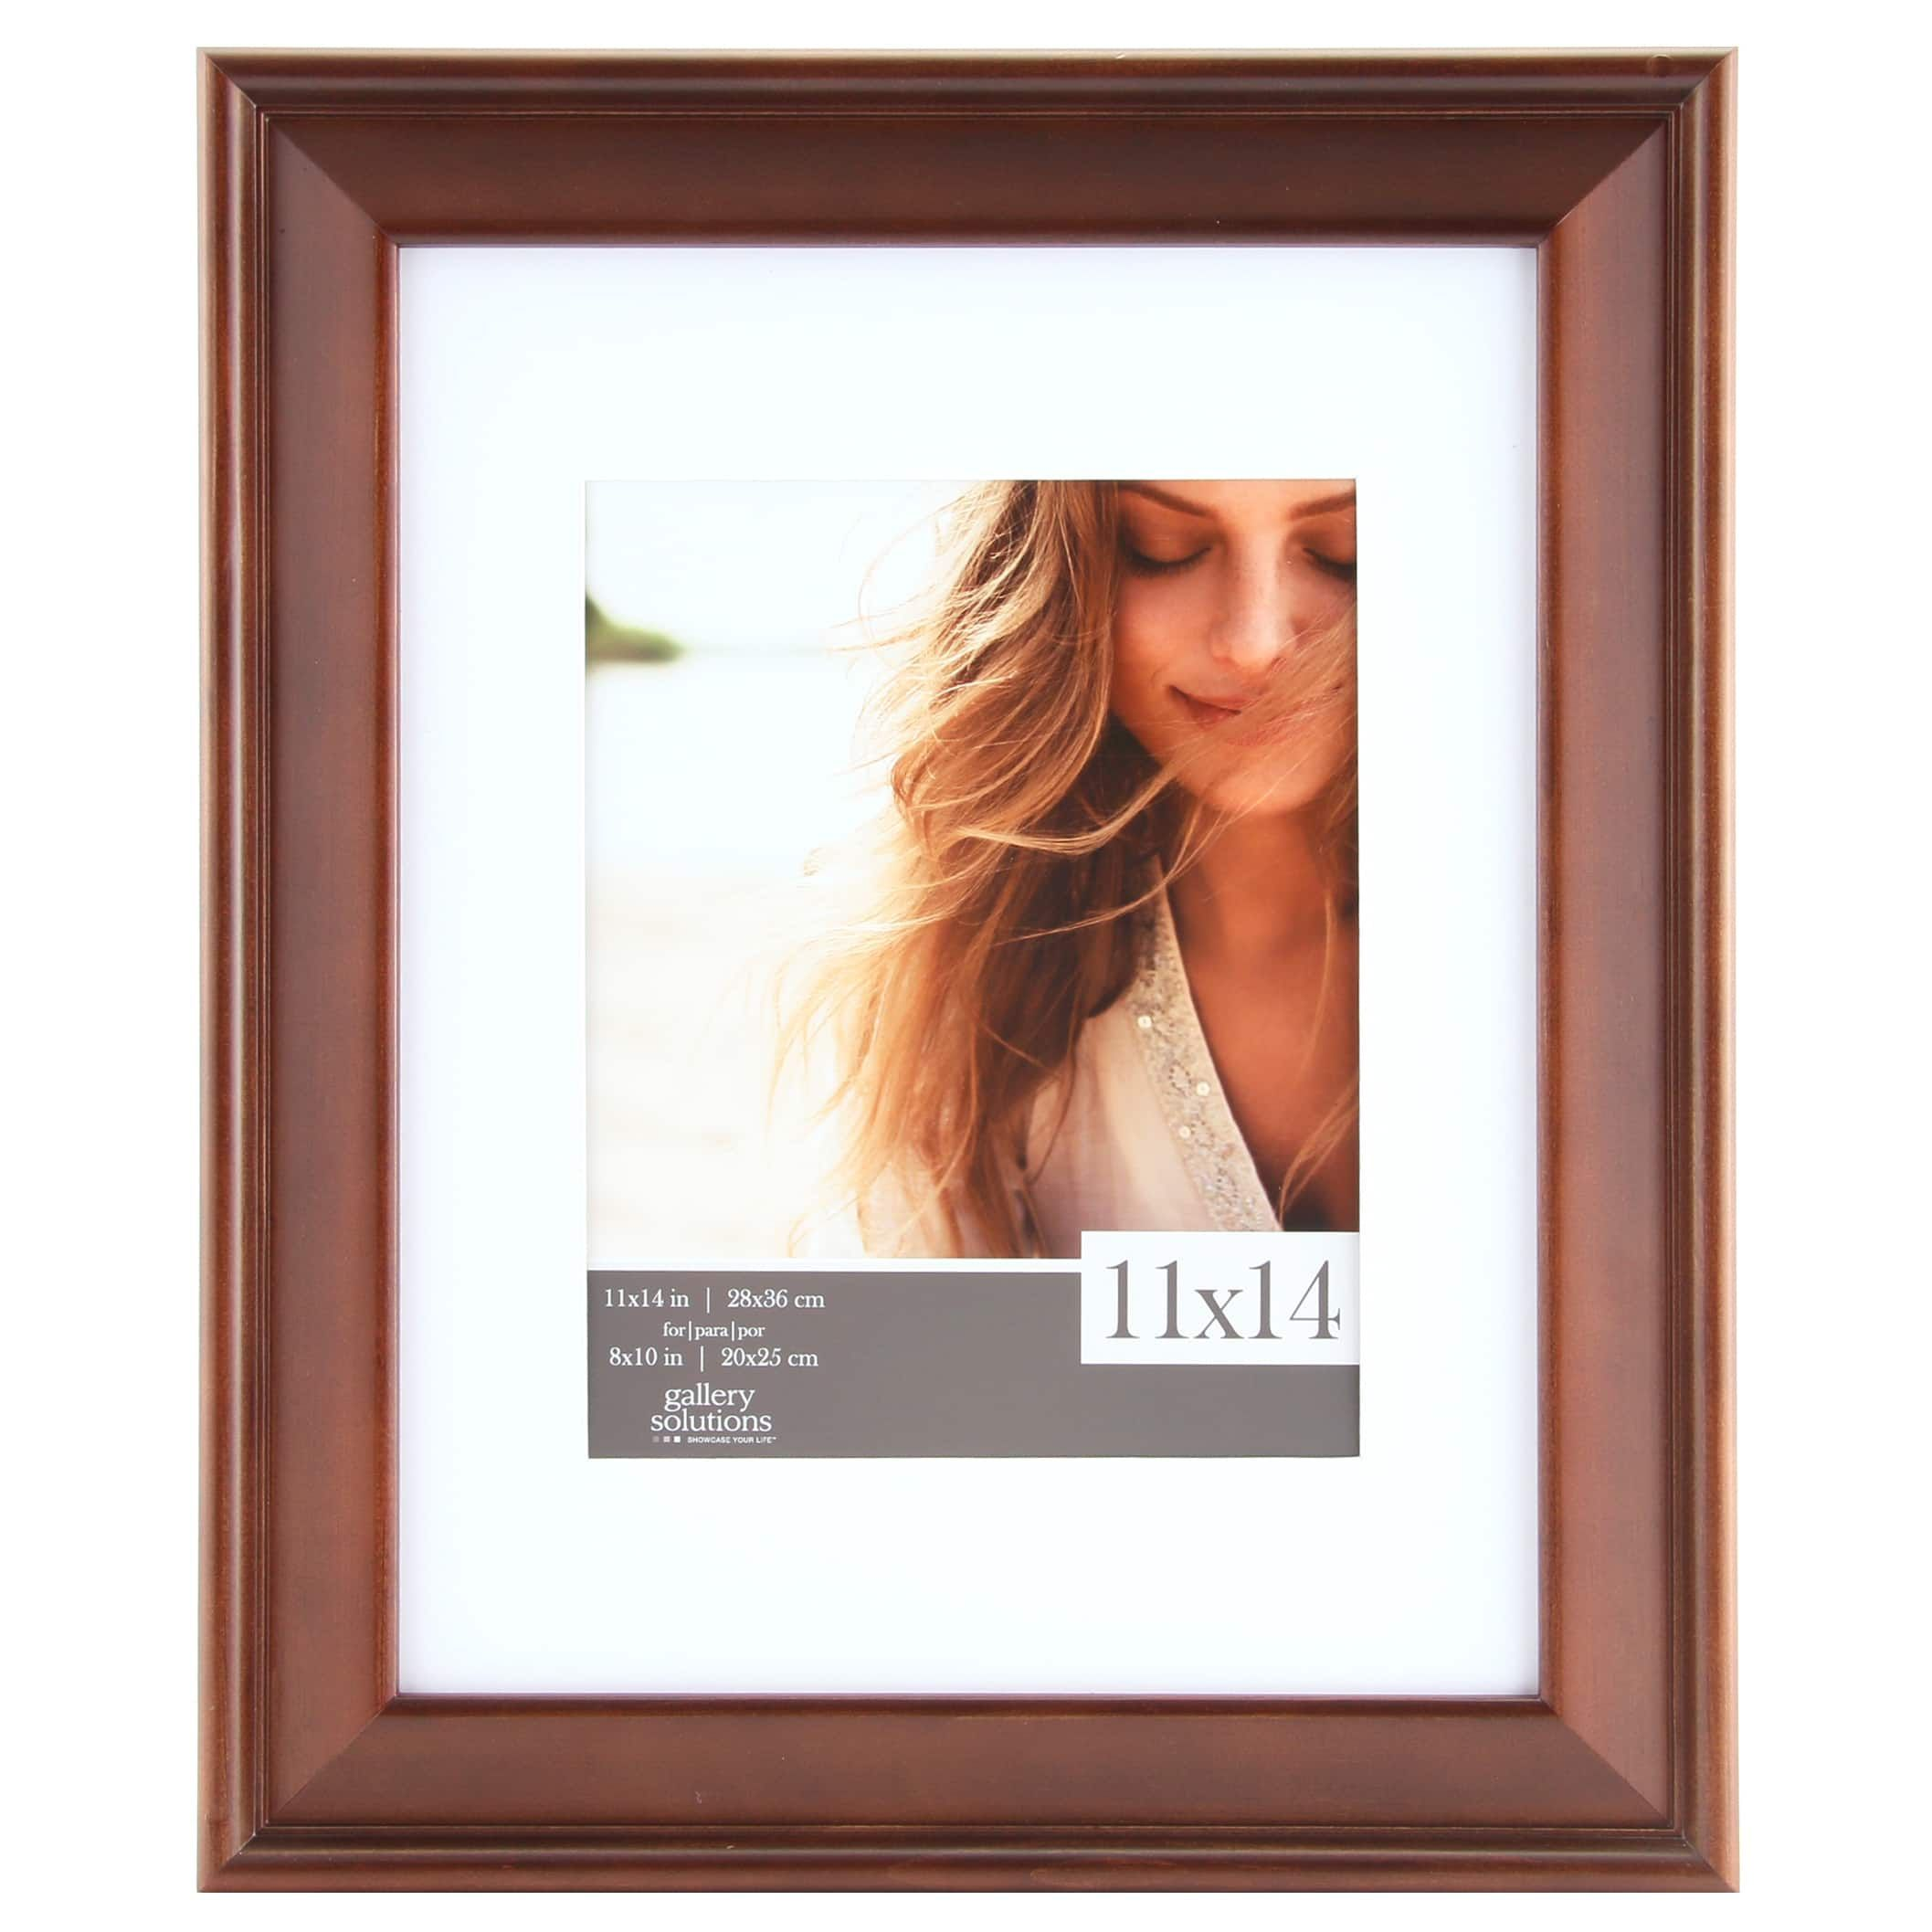 Gallery Solutions Walnut Wood White Slant Matted Frame (8x10/5x7 ...